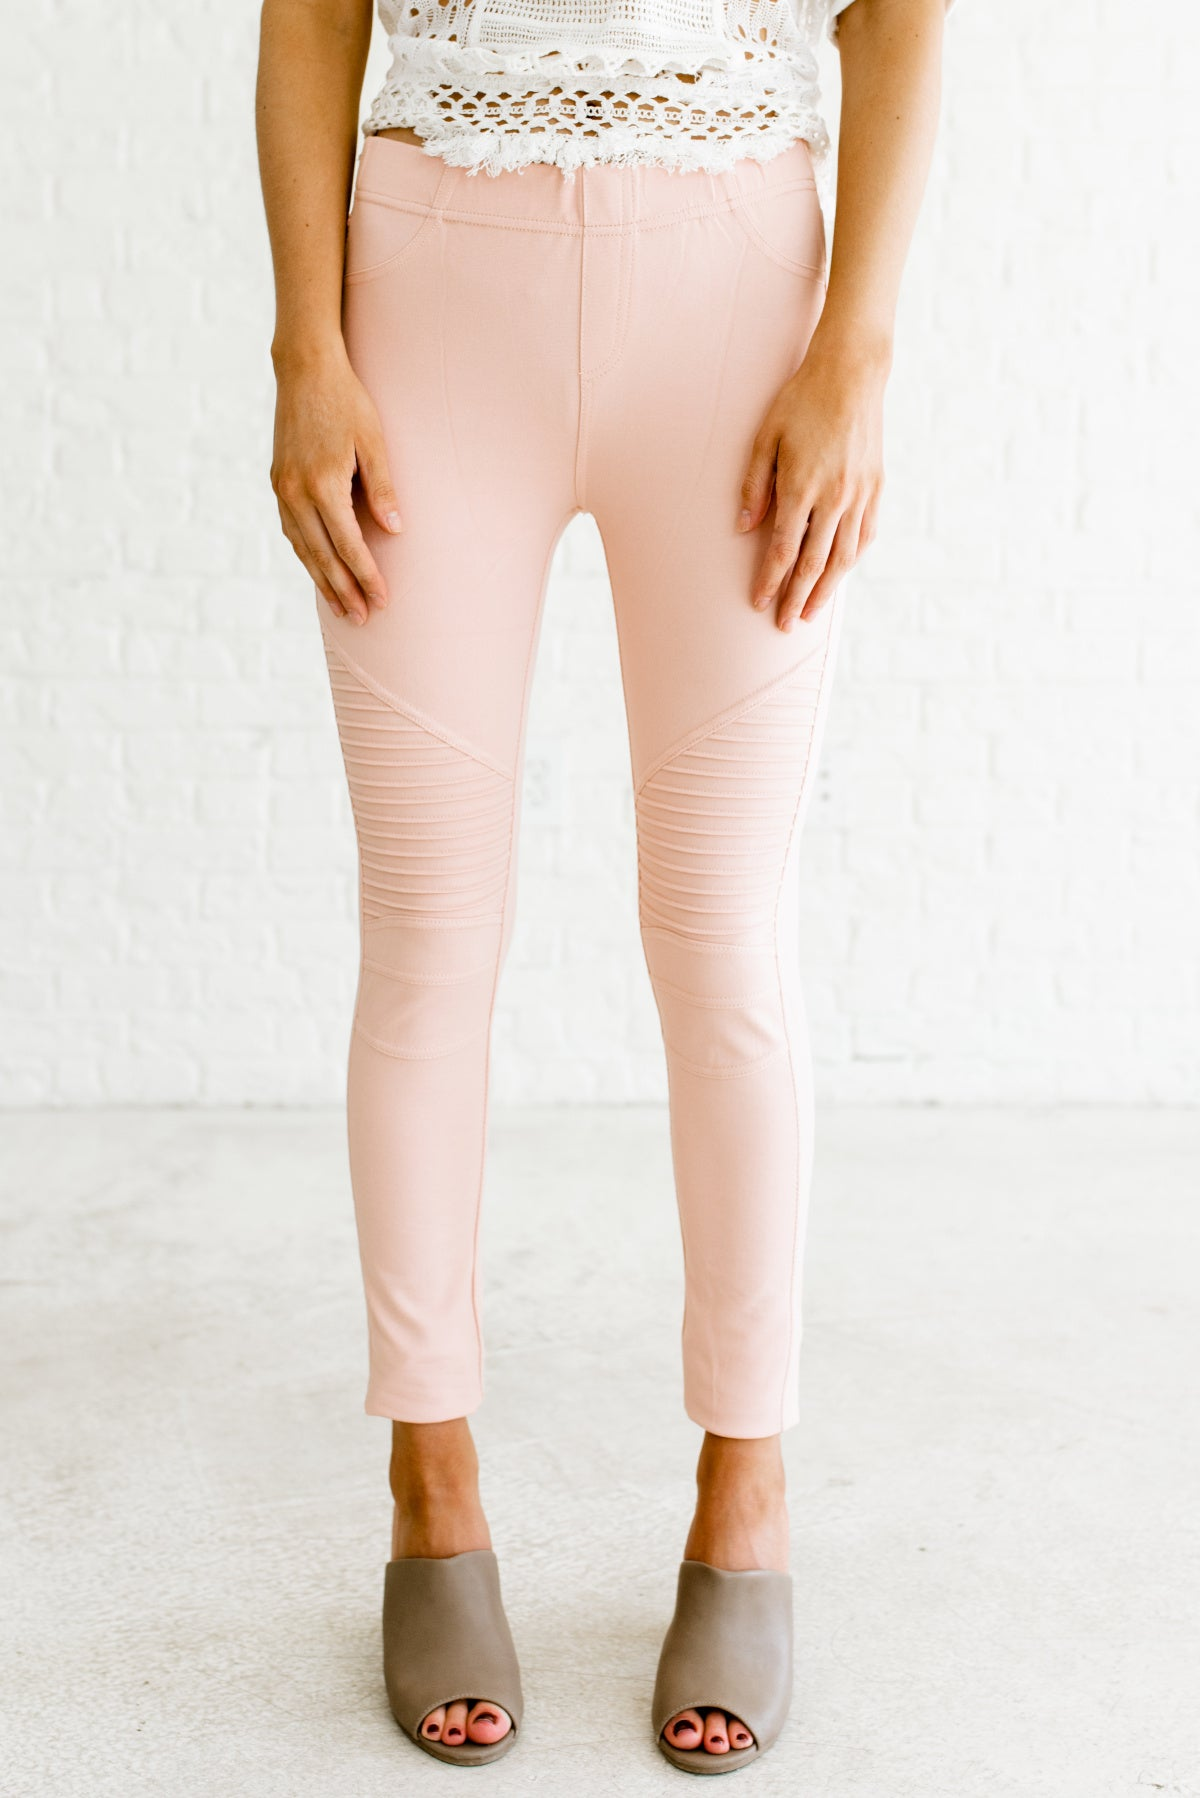 Blush Pink Cute Moto Jeggings Jean Leggings Affordable Online Boutique